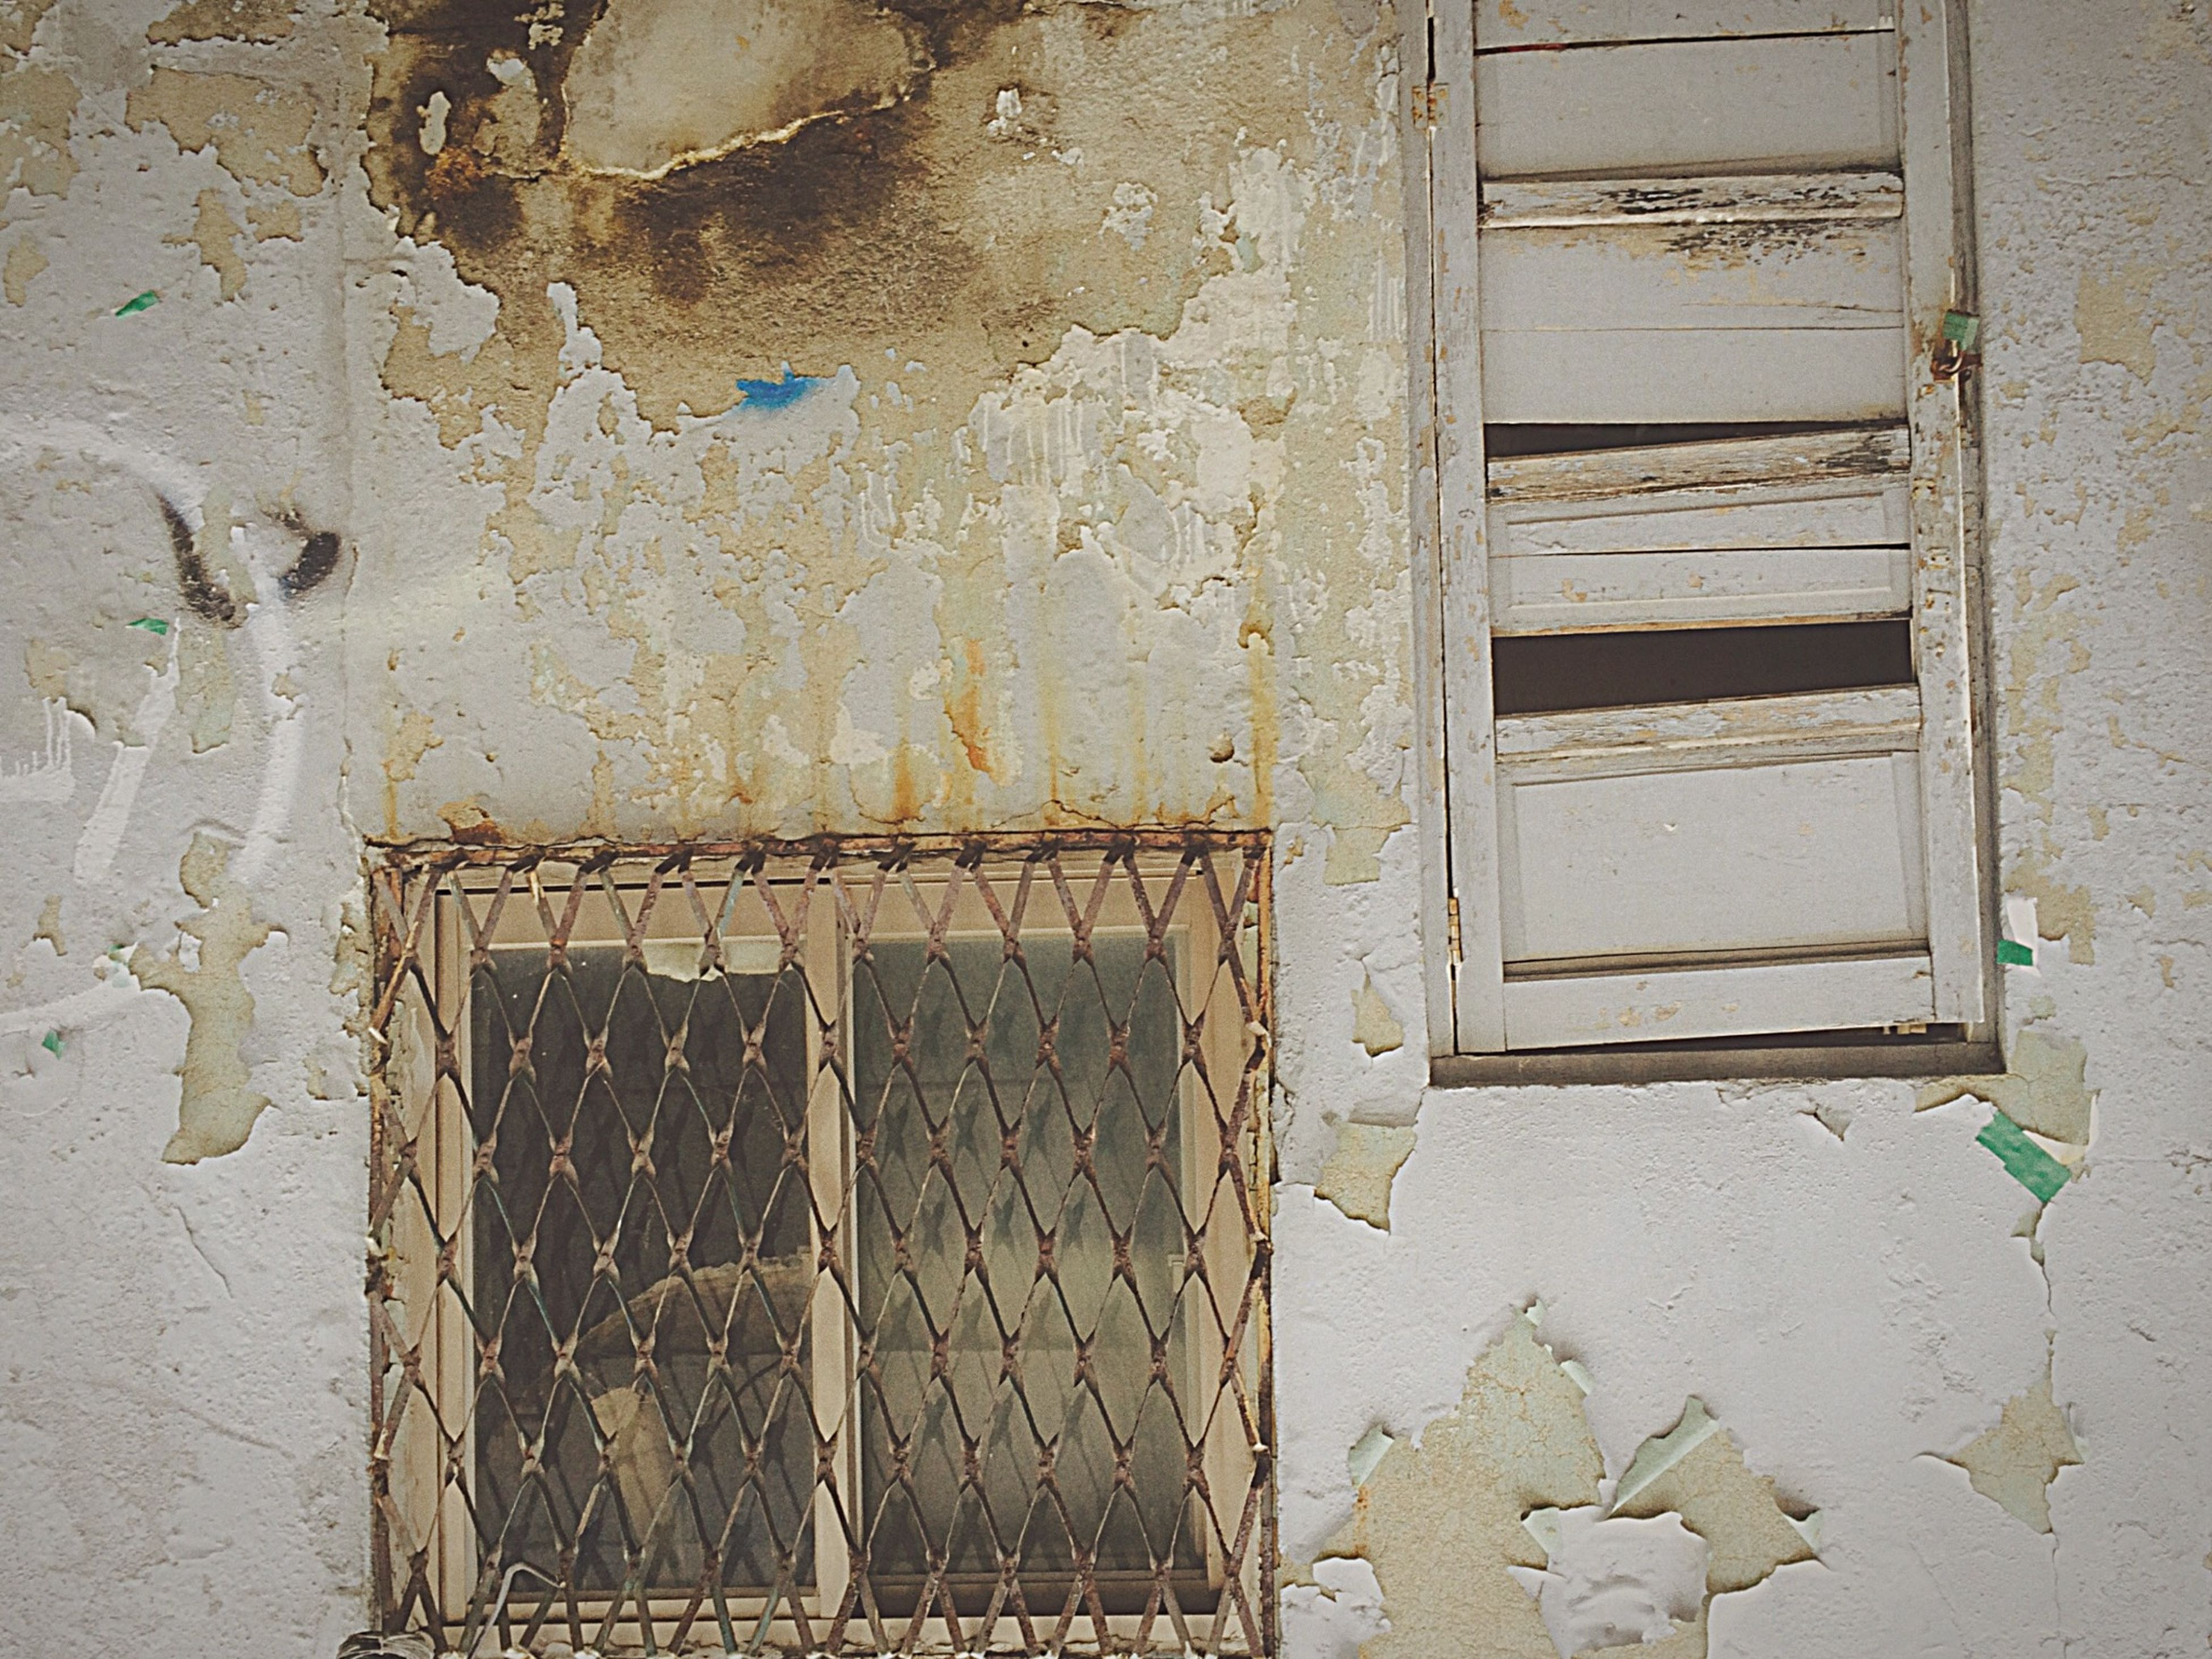 architecture, built structure, building exterior, weathered, old, abandoned, damaged, door, closed, wall - building feature, run-down, deterioration, house, obsolete, window, bad condition, wall, brick wall, wood - material, peeling off